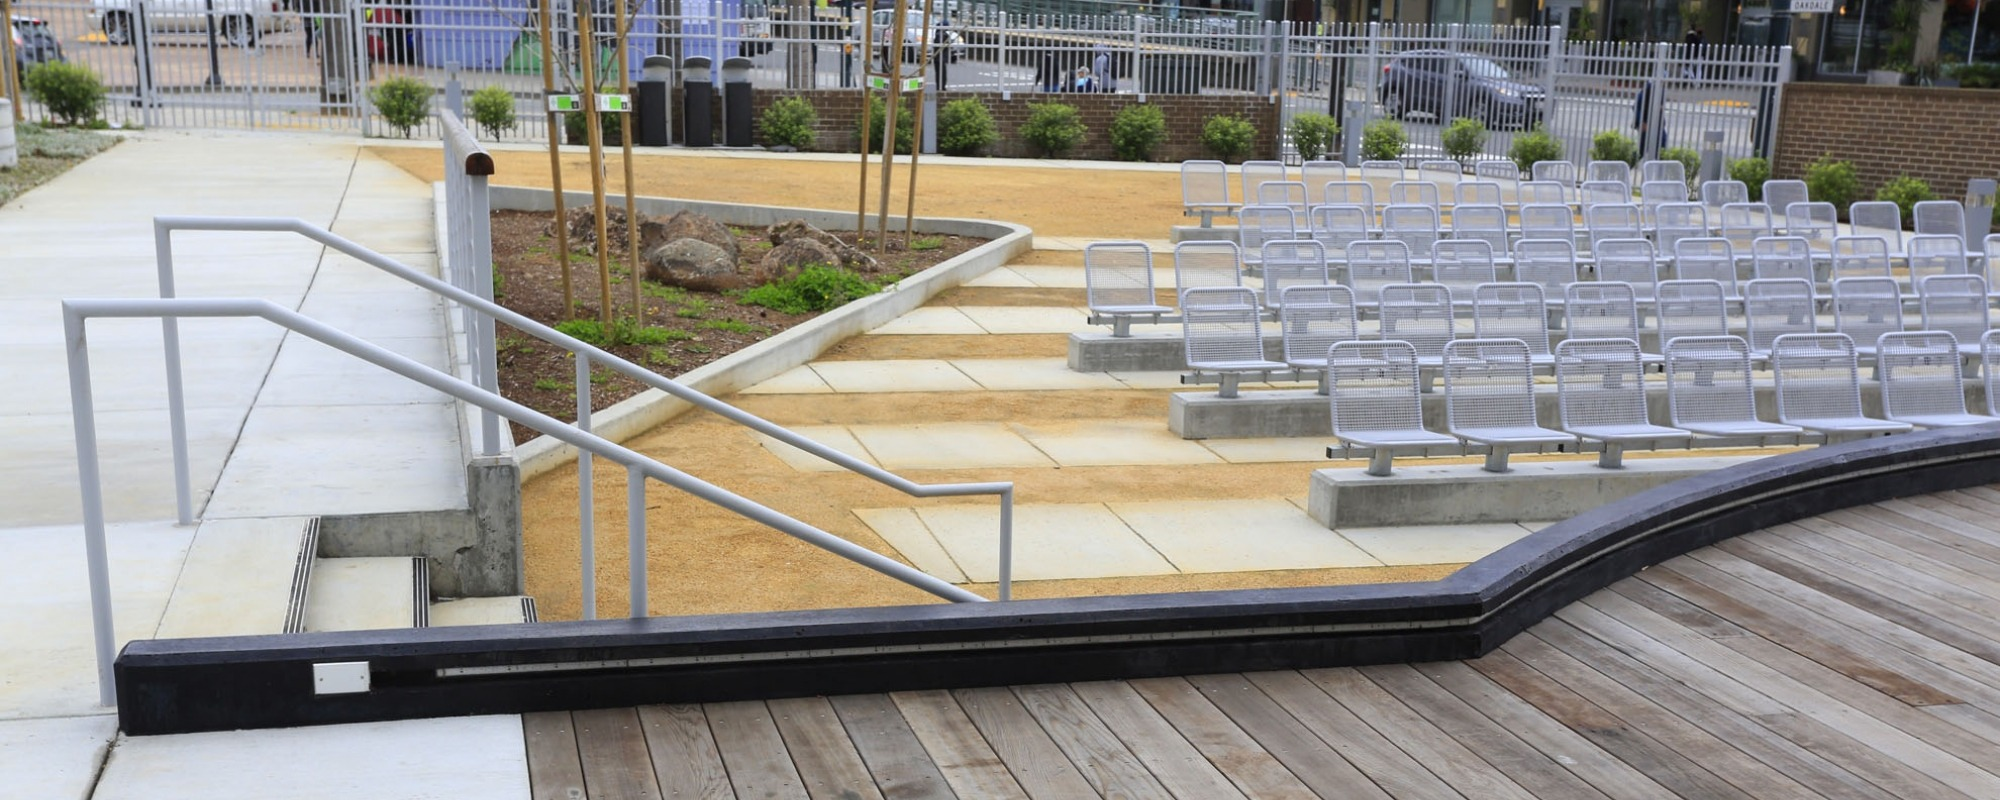 view of seating from deck